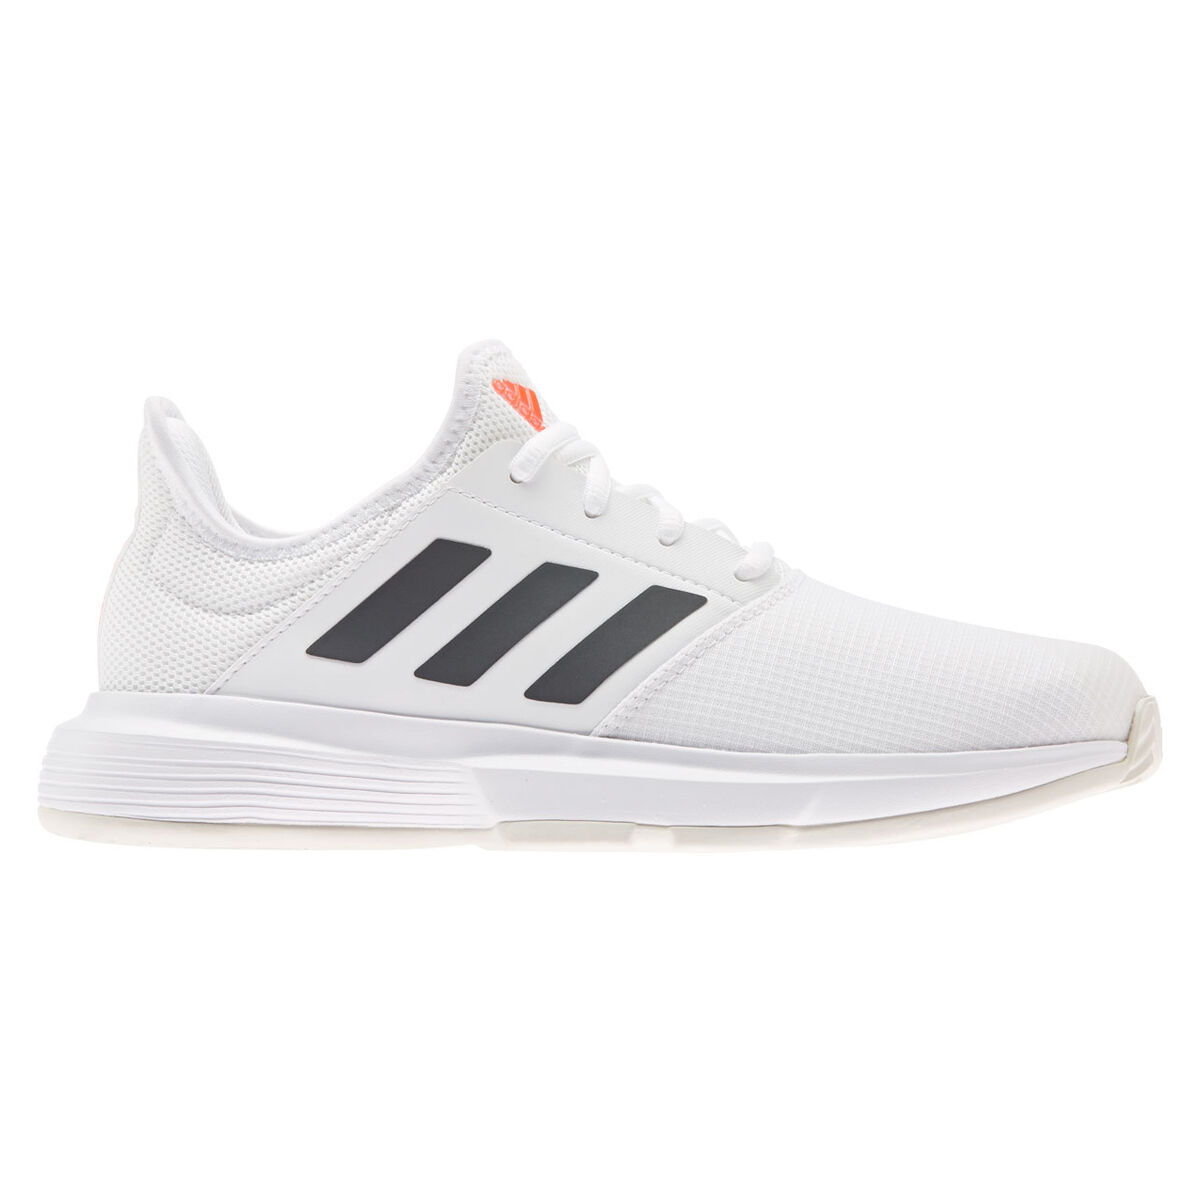 yeezy fly365 shoes clearance sale women | adidas GameCourt Womens Tennis Shoes